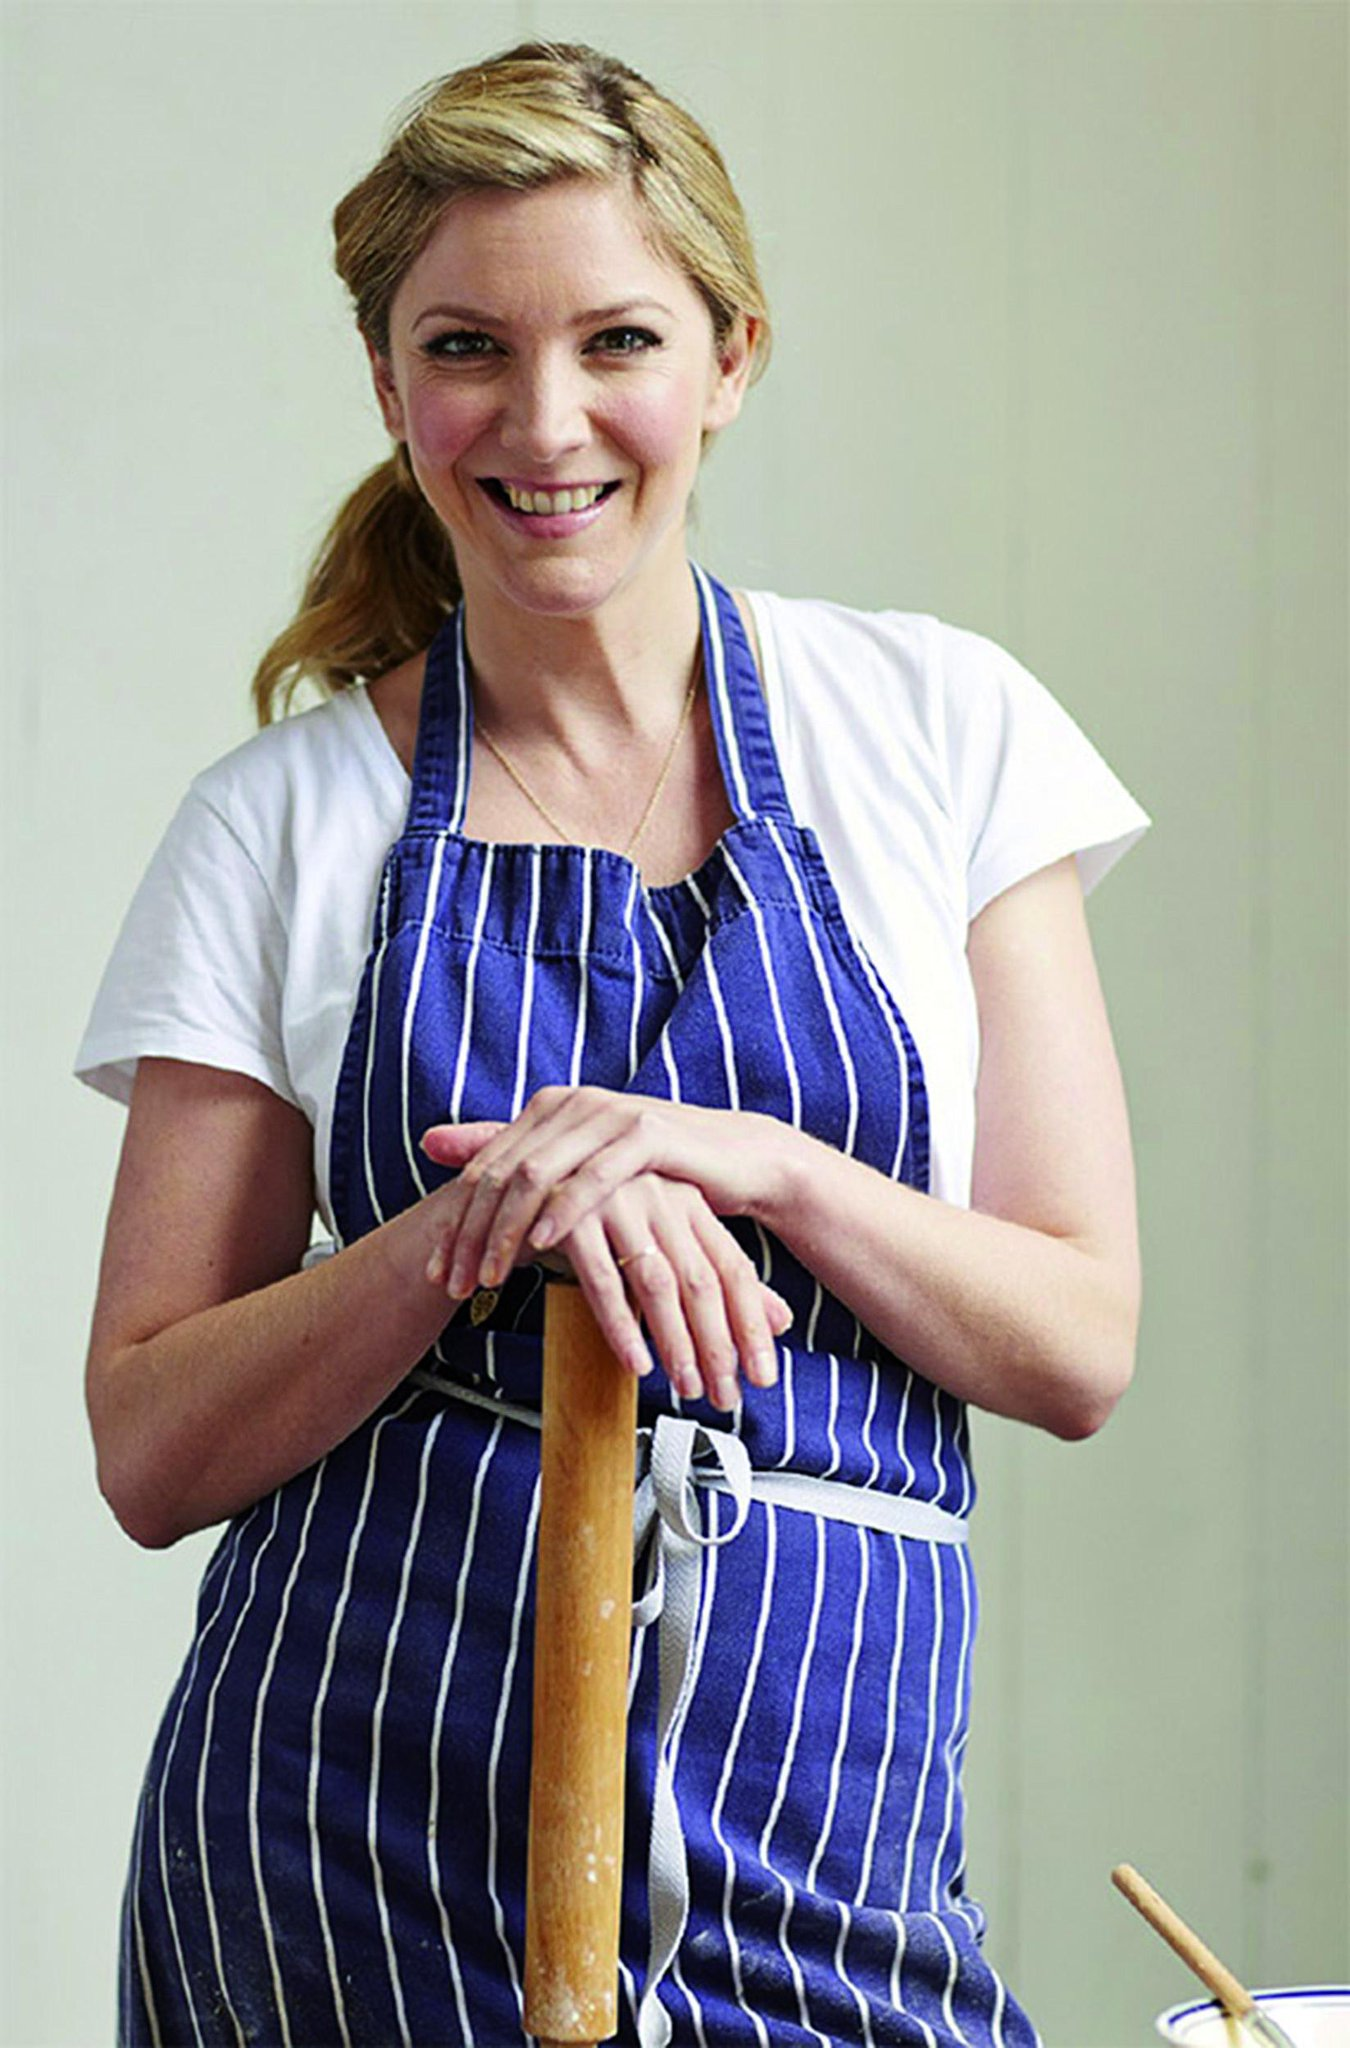 RT @etcmag_south: .@lisafaulkner1 shares her thoughts on motherhood and recipes to make #MothersDay special - http://t.co/w24qsmYMIZ http:/…